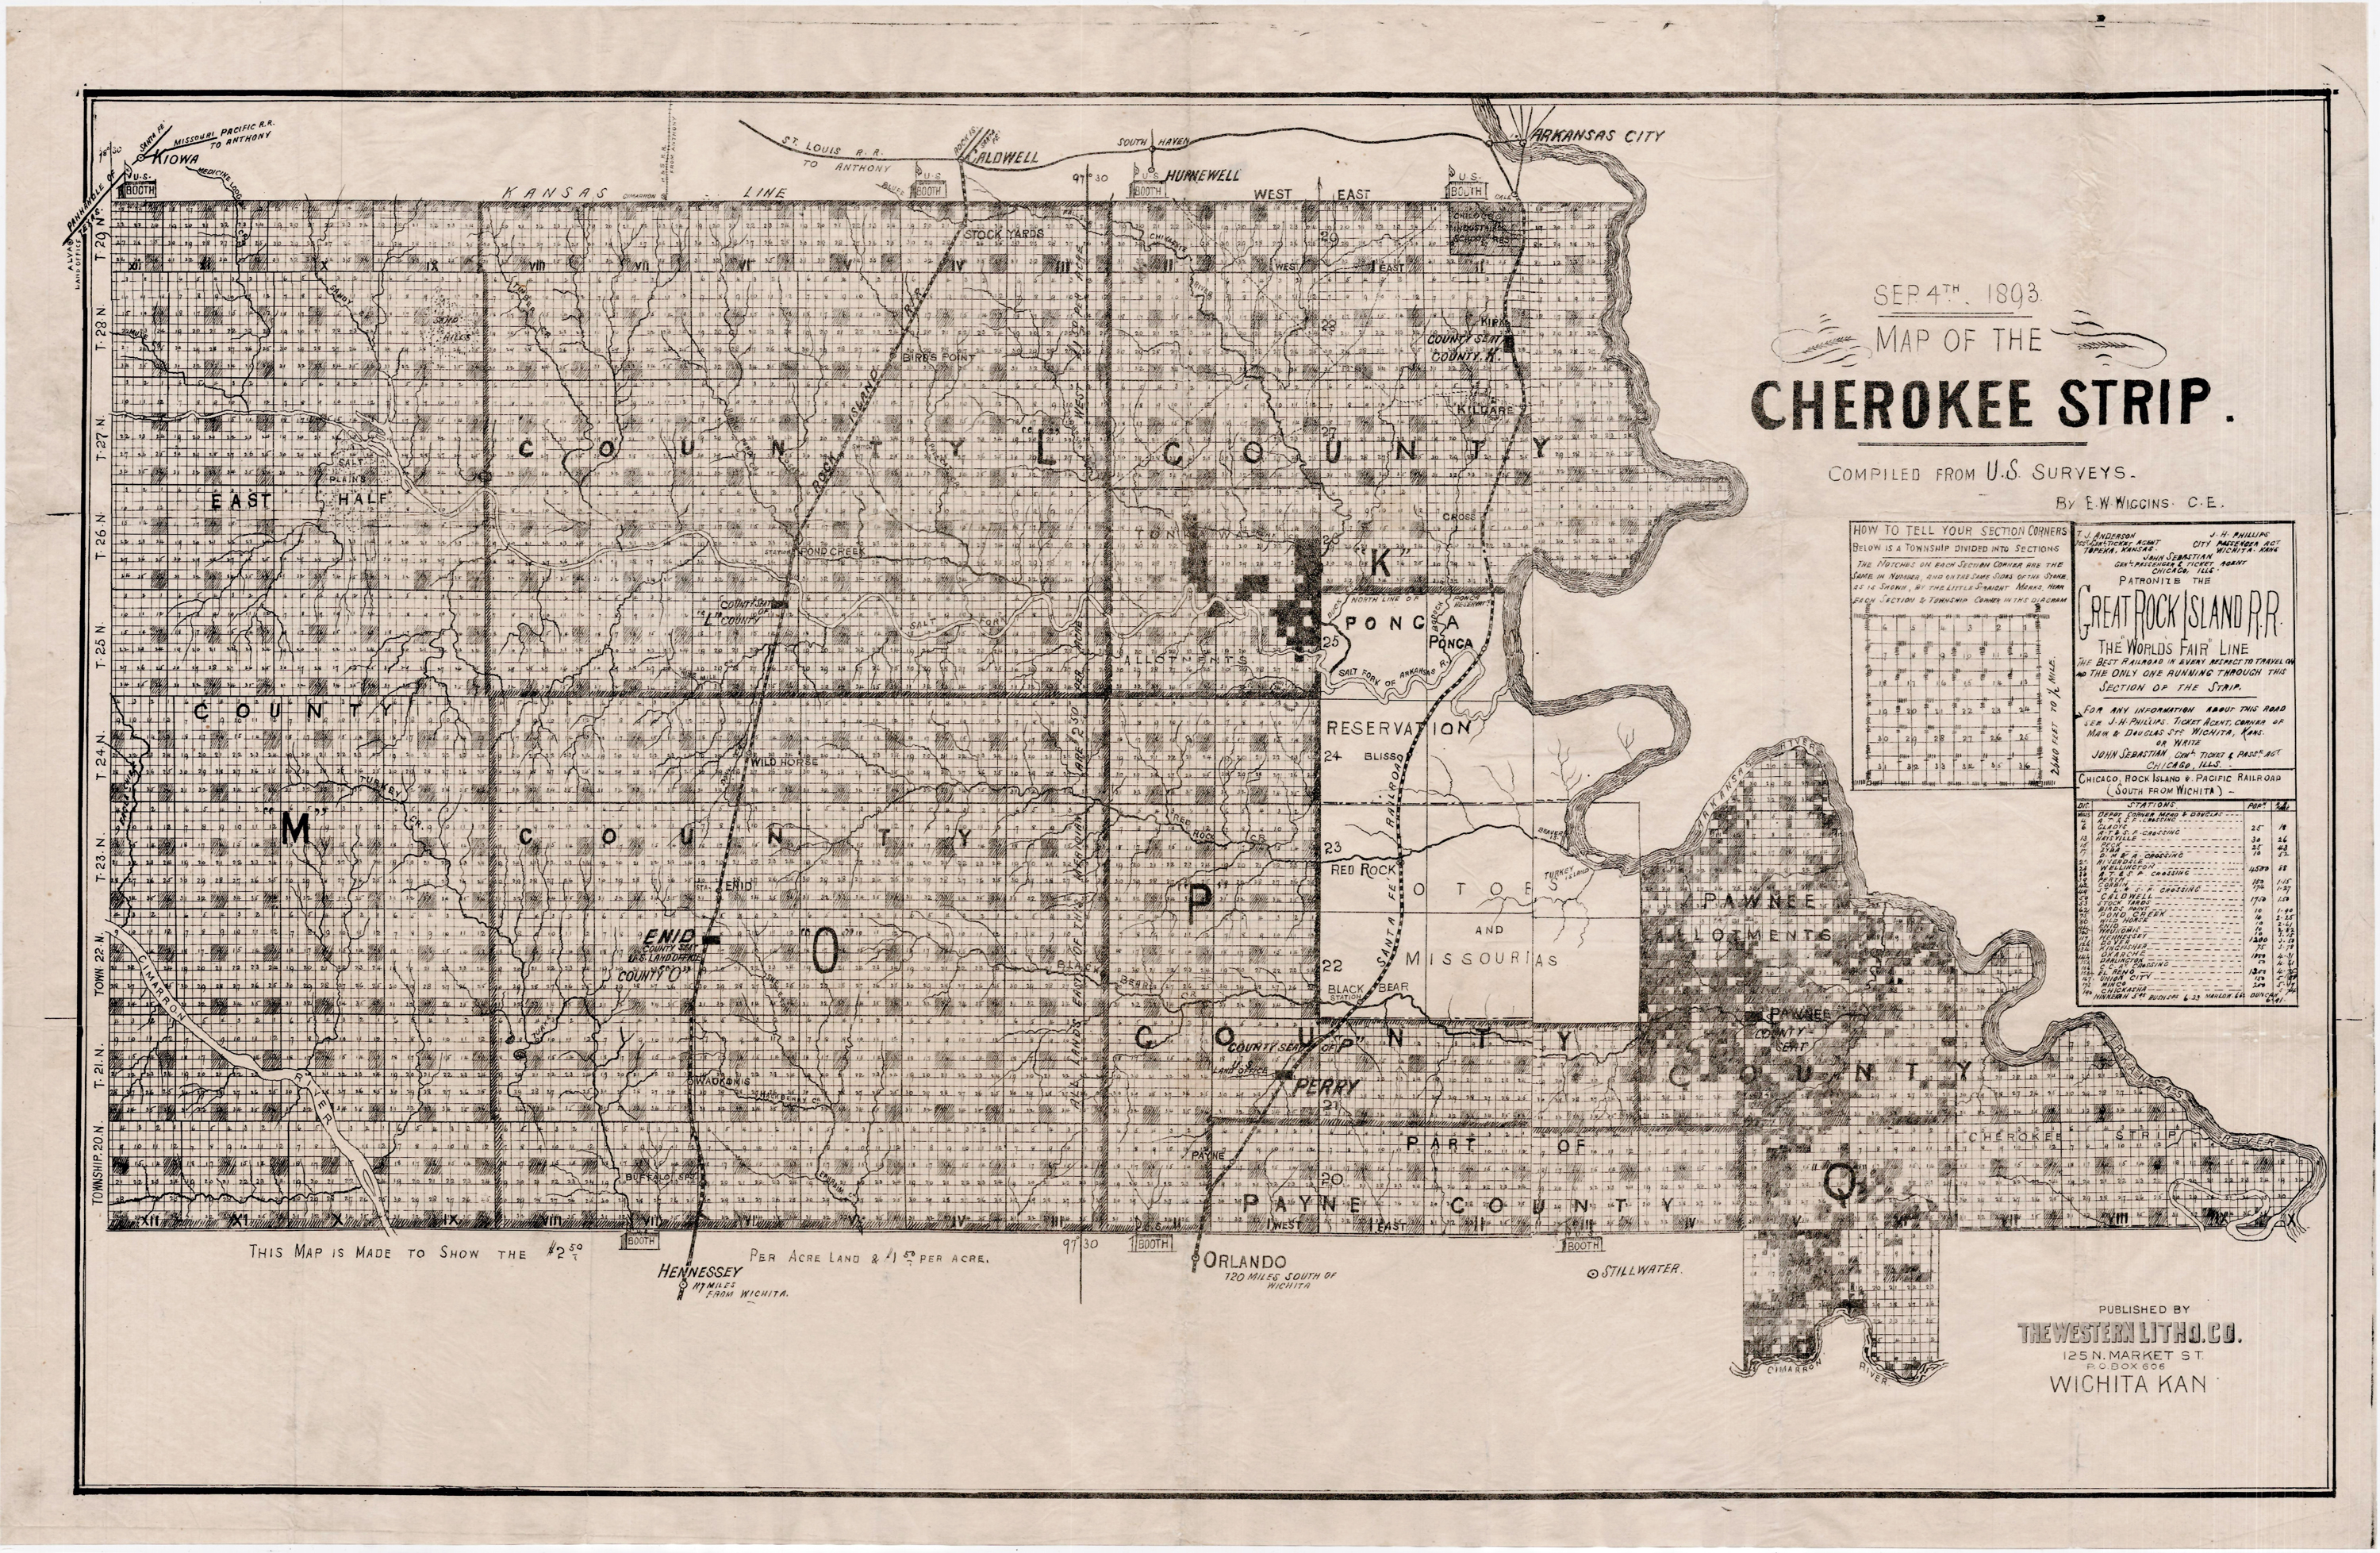 Map of the Cherokee Outlet published on September 4, 1893.